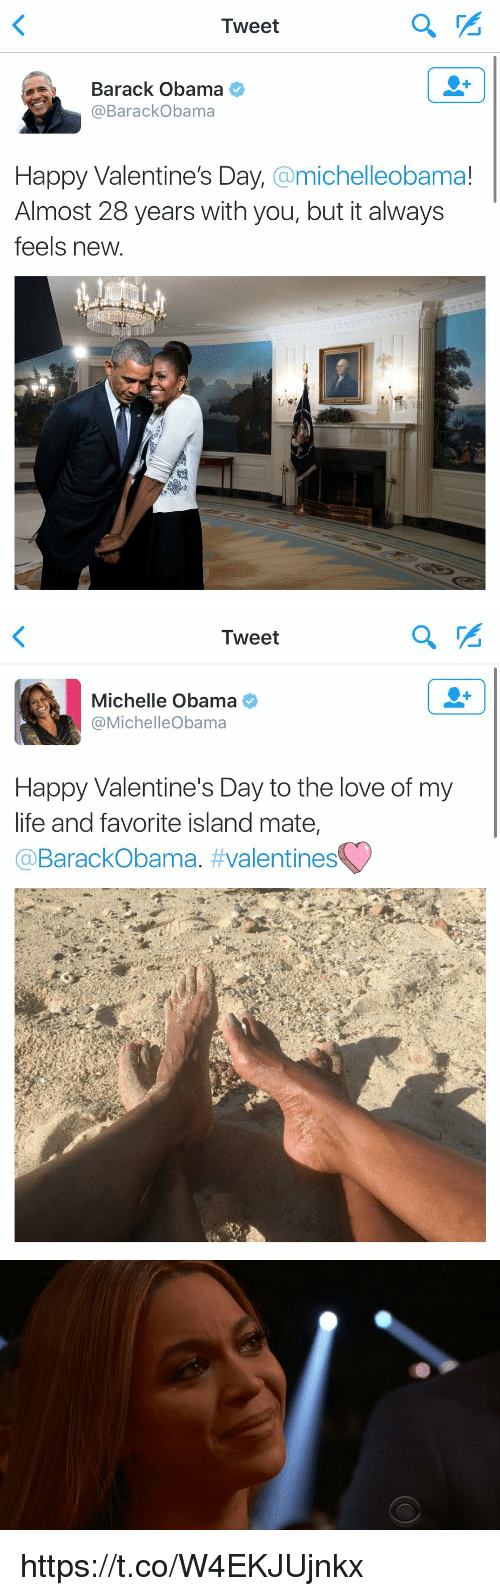 happy valentine day: Tweet  Barack Obama  @Barack Obama  Happy Valentine's Day.  a michelleobama!  Almost 28 years with you, but it always  feels new   Tweet  Michelle Obama  Michelle Obama  Happy Valentine's Day to the love of my  life and favorite island mate  BarackObama  valentines   C) https://t.co/W4EKJUjnkx